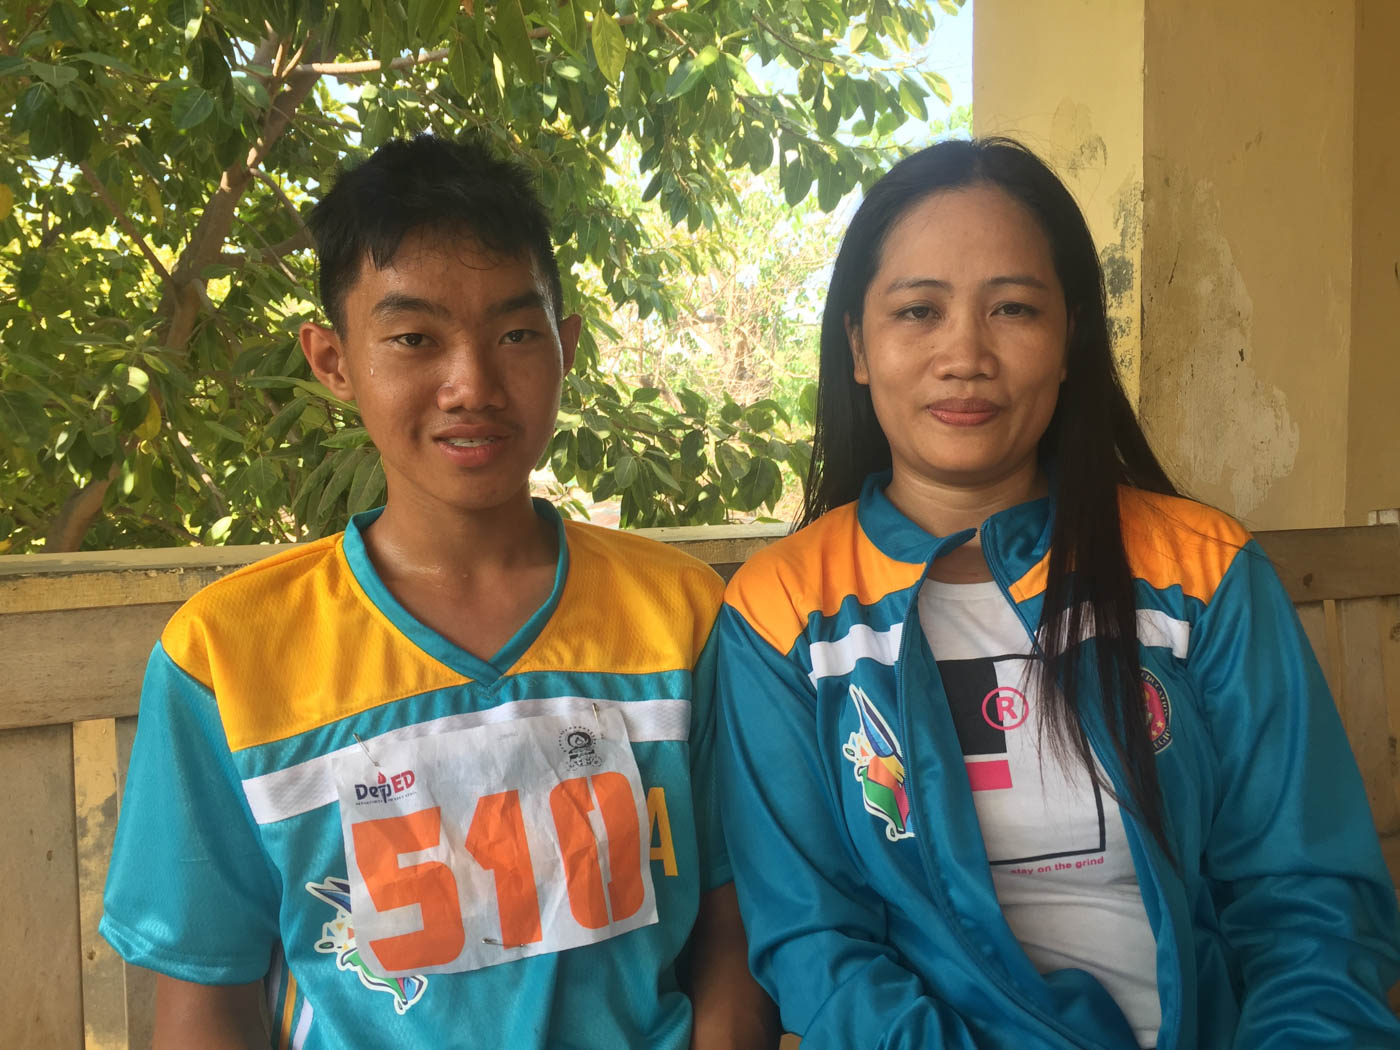 ATHLETE AND COACH. Leo Lee and Mary Jane are looking to train harder for next year's Palarong Pambansa. Photo by Mara Cepeda/Rappler